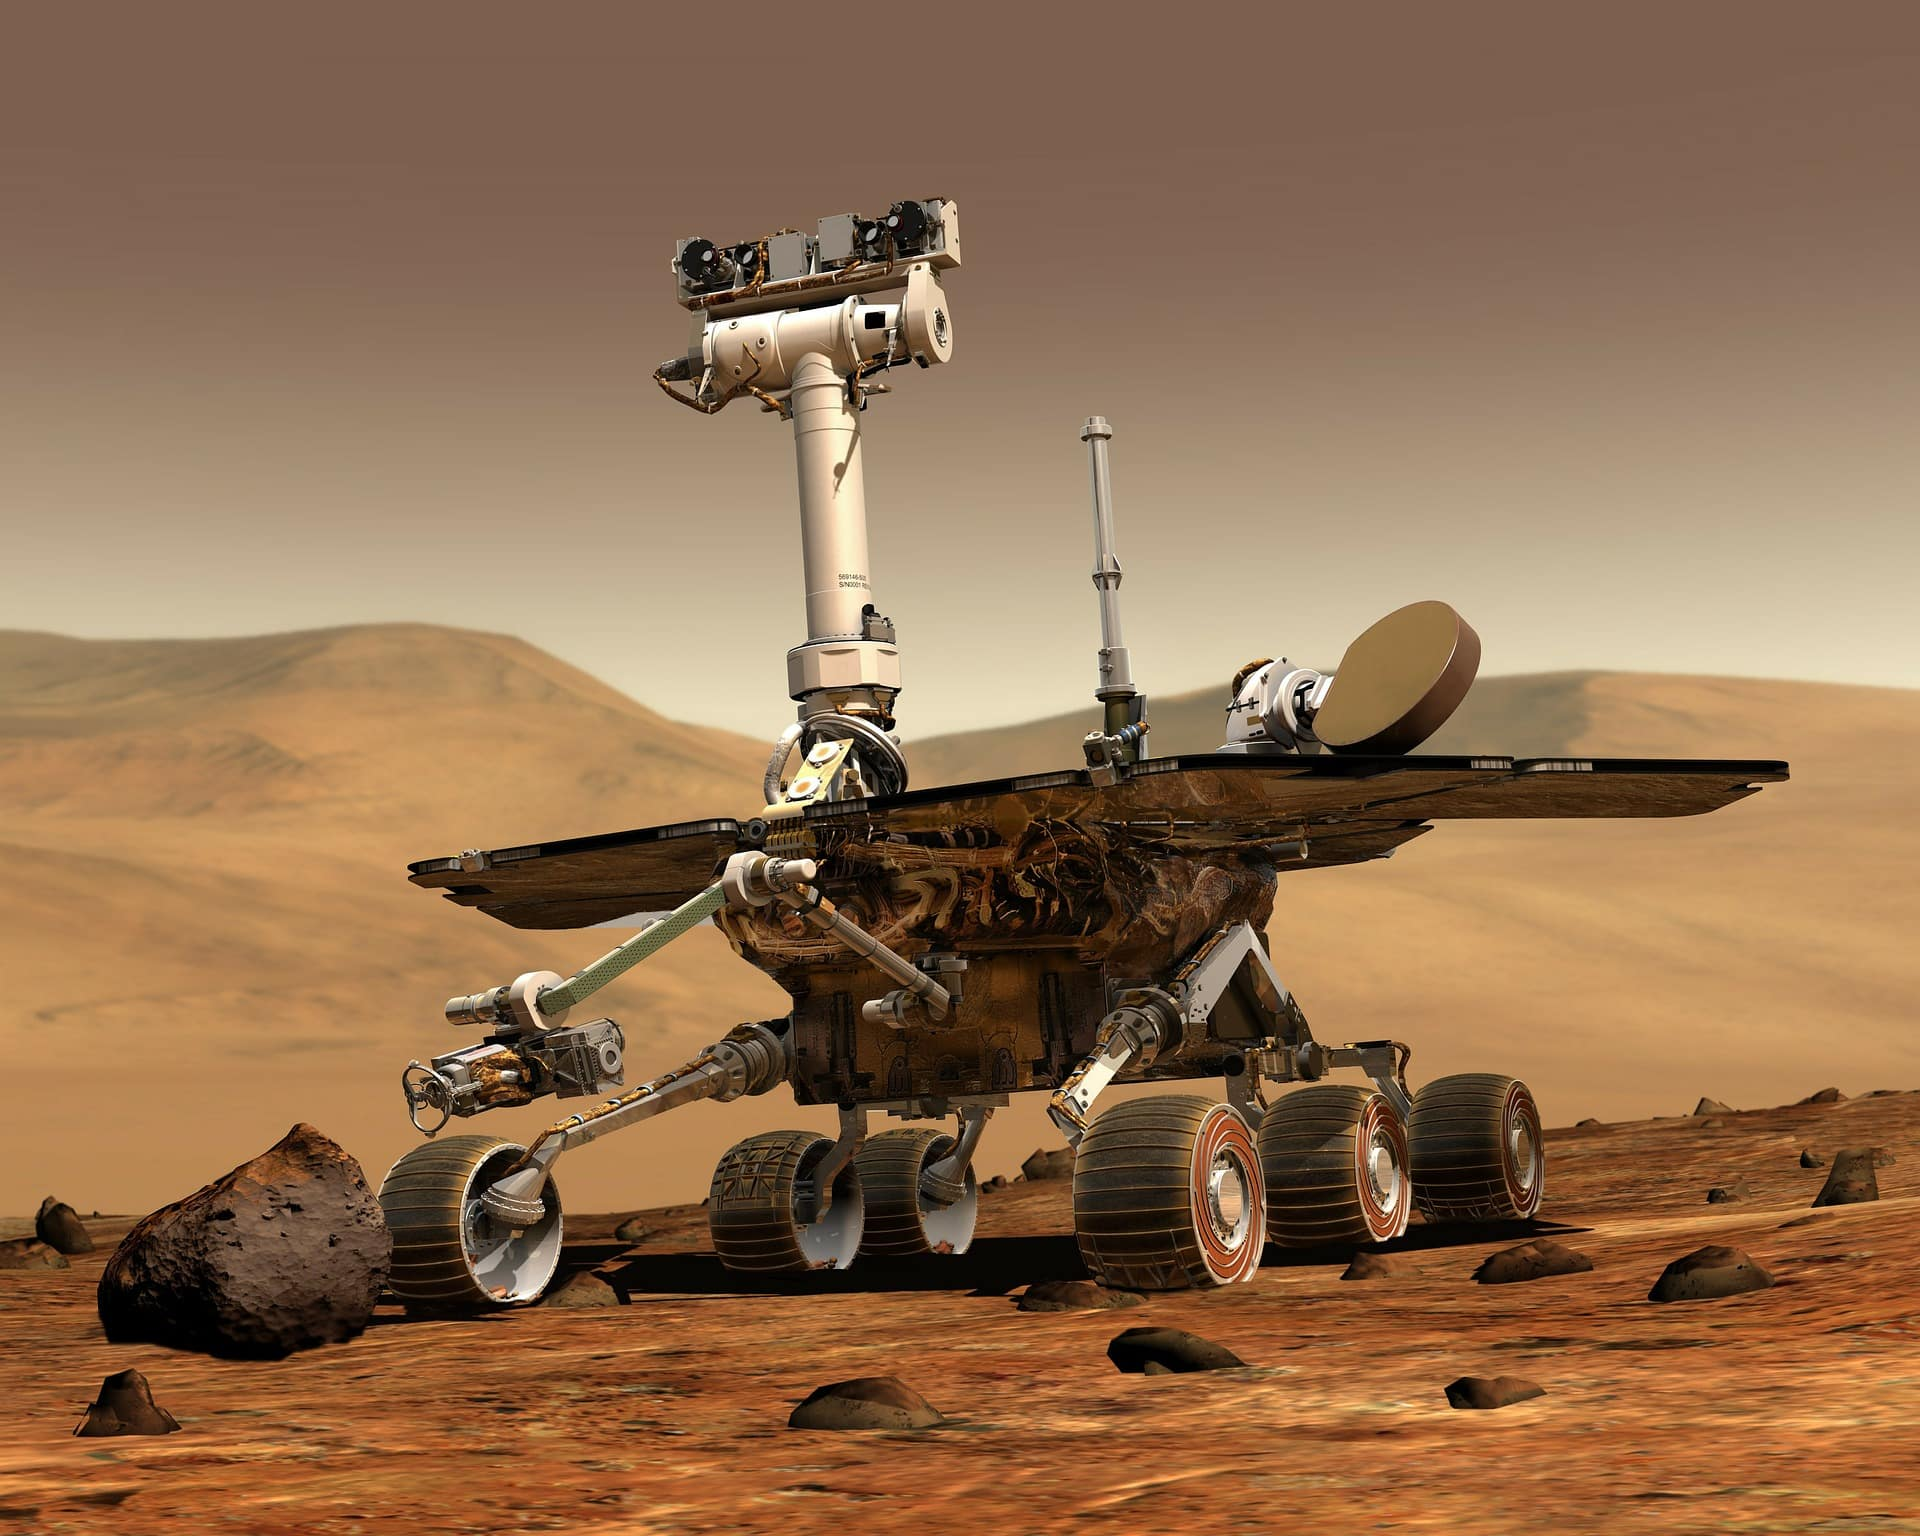 NASA Perseverance rover to look for signs of alien life on Mars